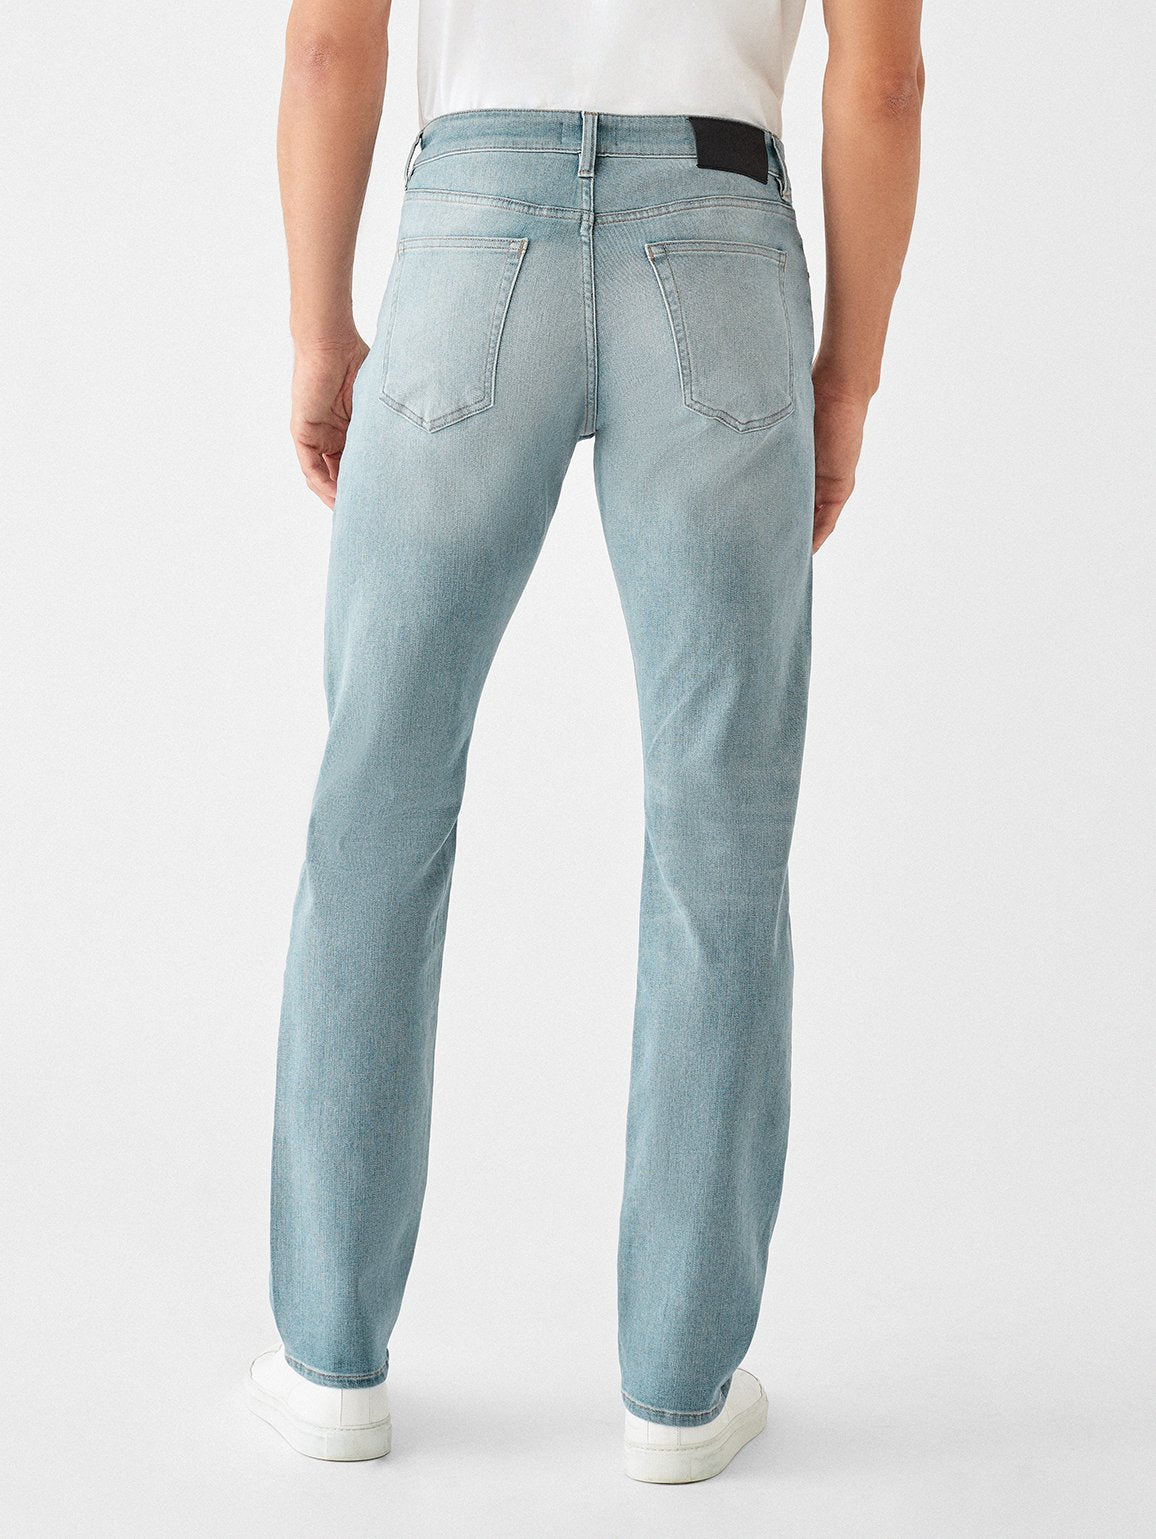 DL1961 Avery Modern Straight Jean In Reverie